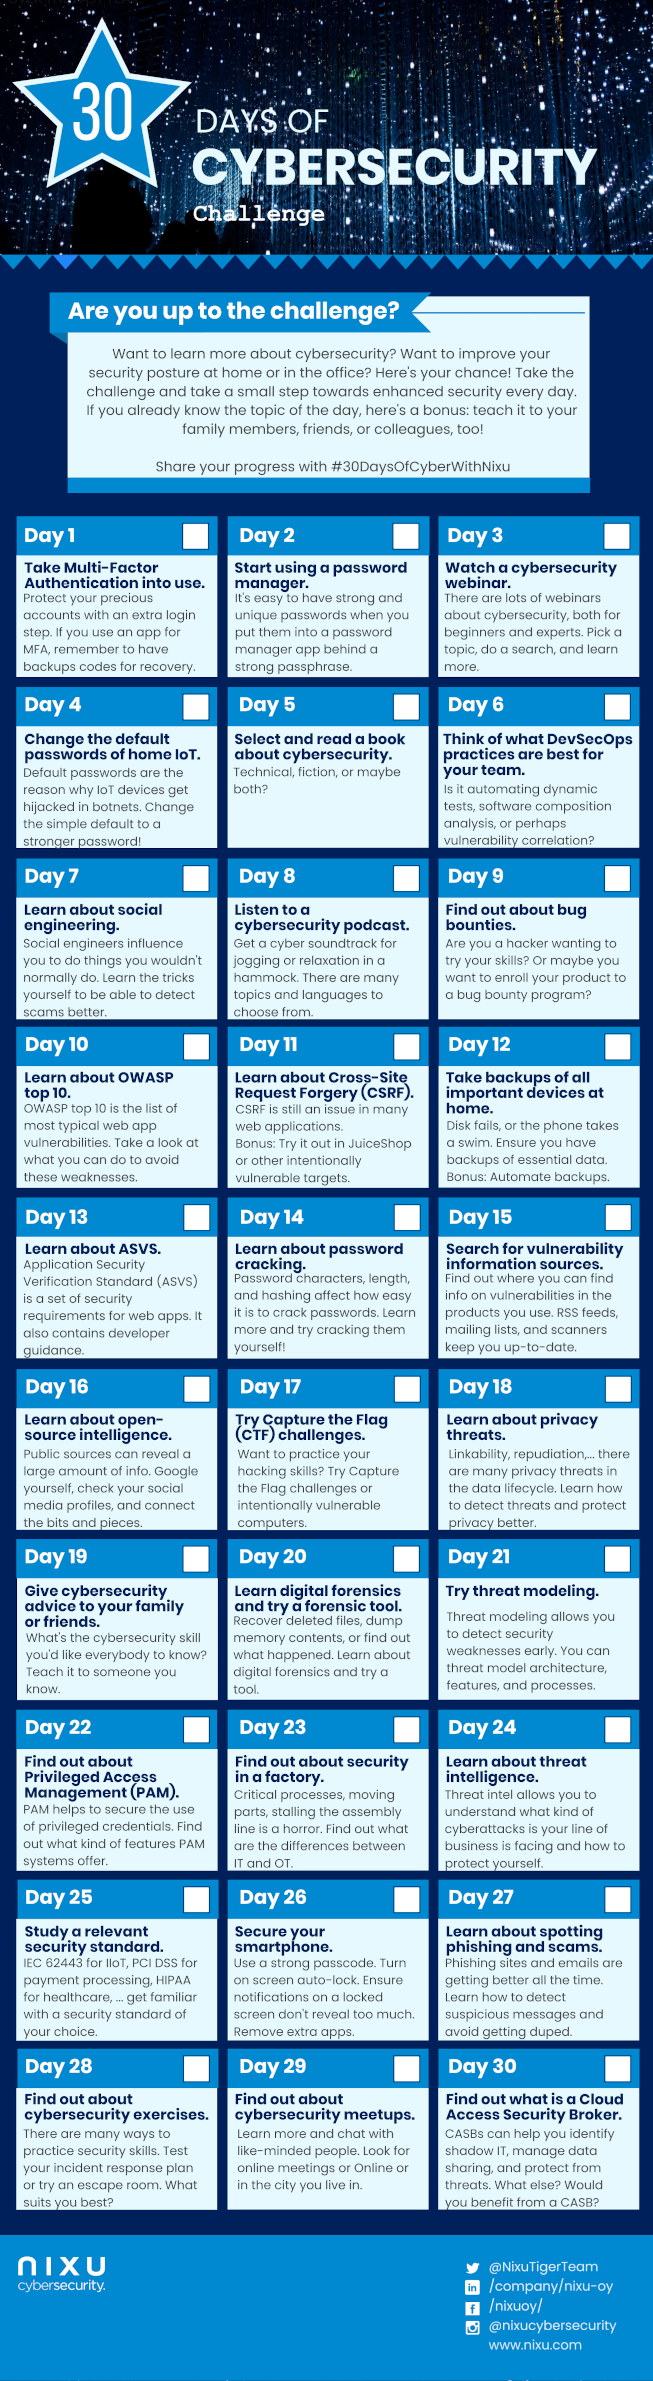 30 days of cybersecurity challenge - share what you've learned and win!